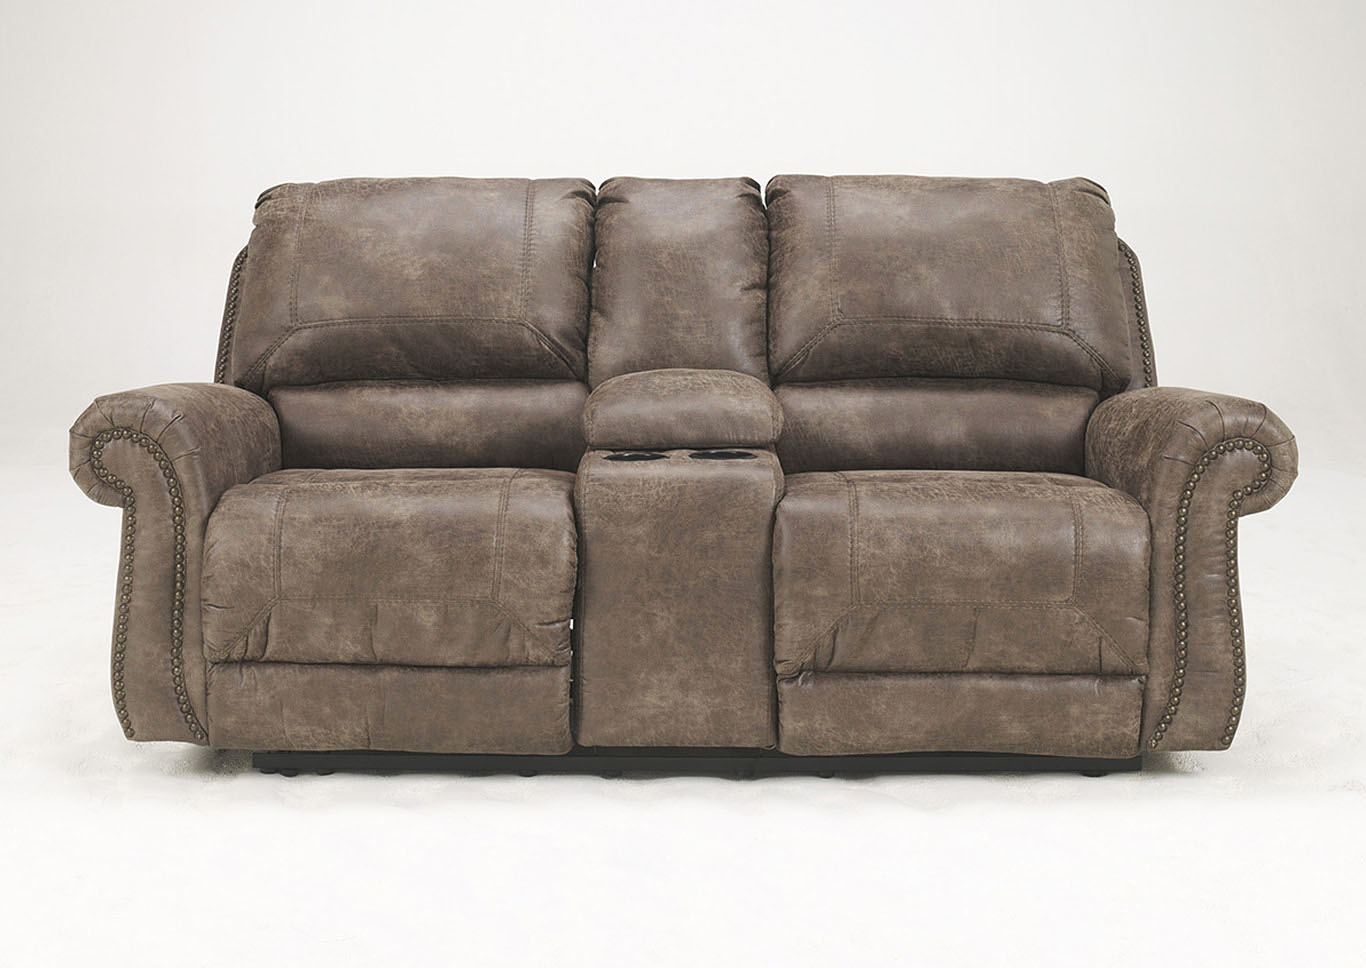 Oberson Gunsmoke Double Reclining Power Loveseat w/Console,Signature Design by Ashley